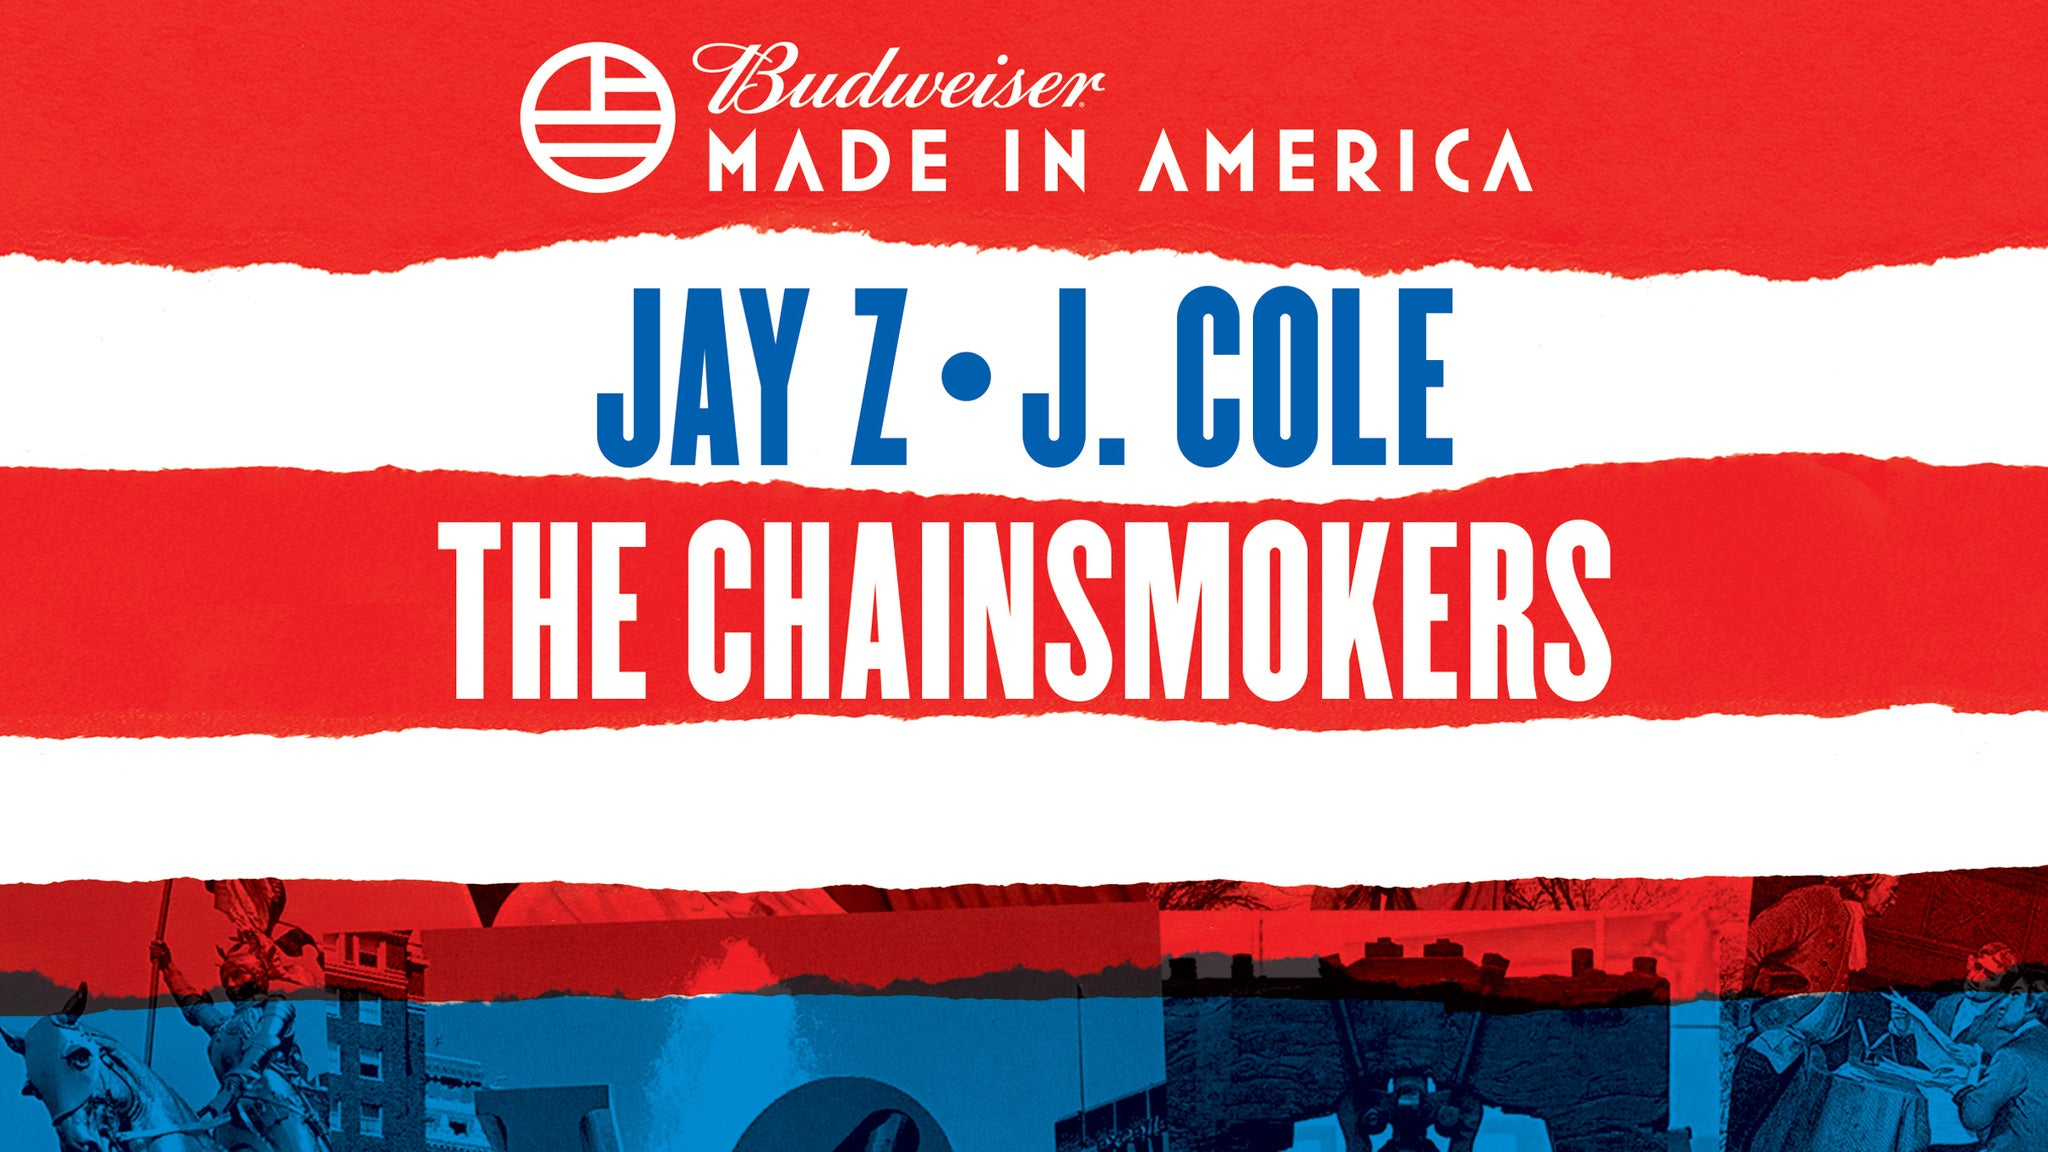 Budweiser Made In America Festival: 2 Day Pass: 9/2 & 9/3